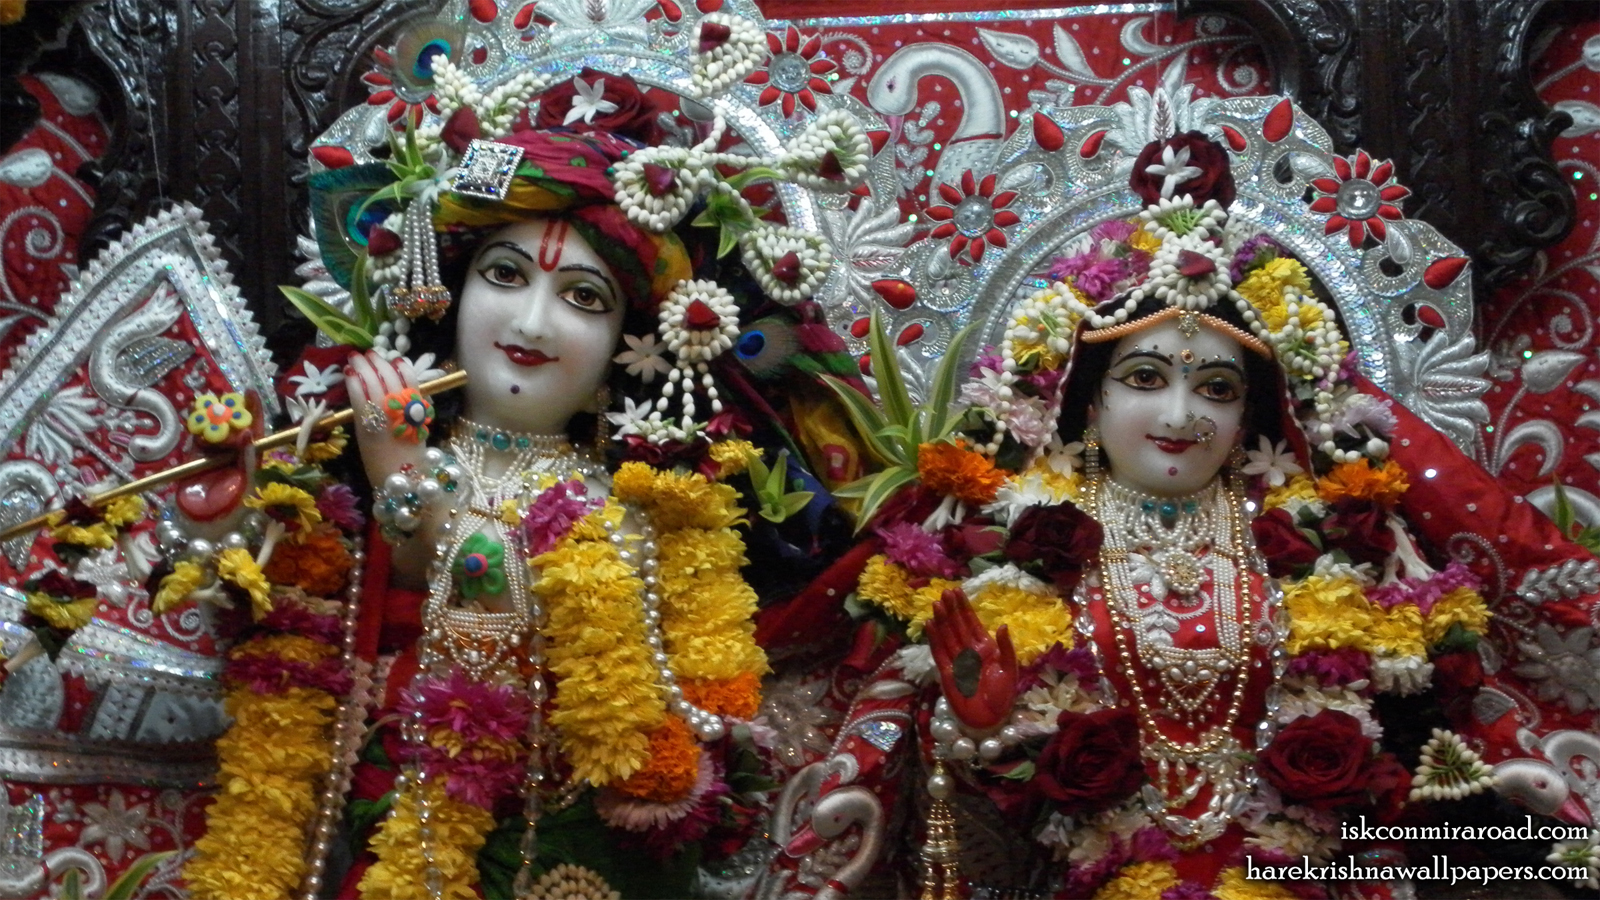 Sri Sri Radha Giridhari Close up Wallpaper (021) Size 1600x900 Download